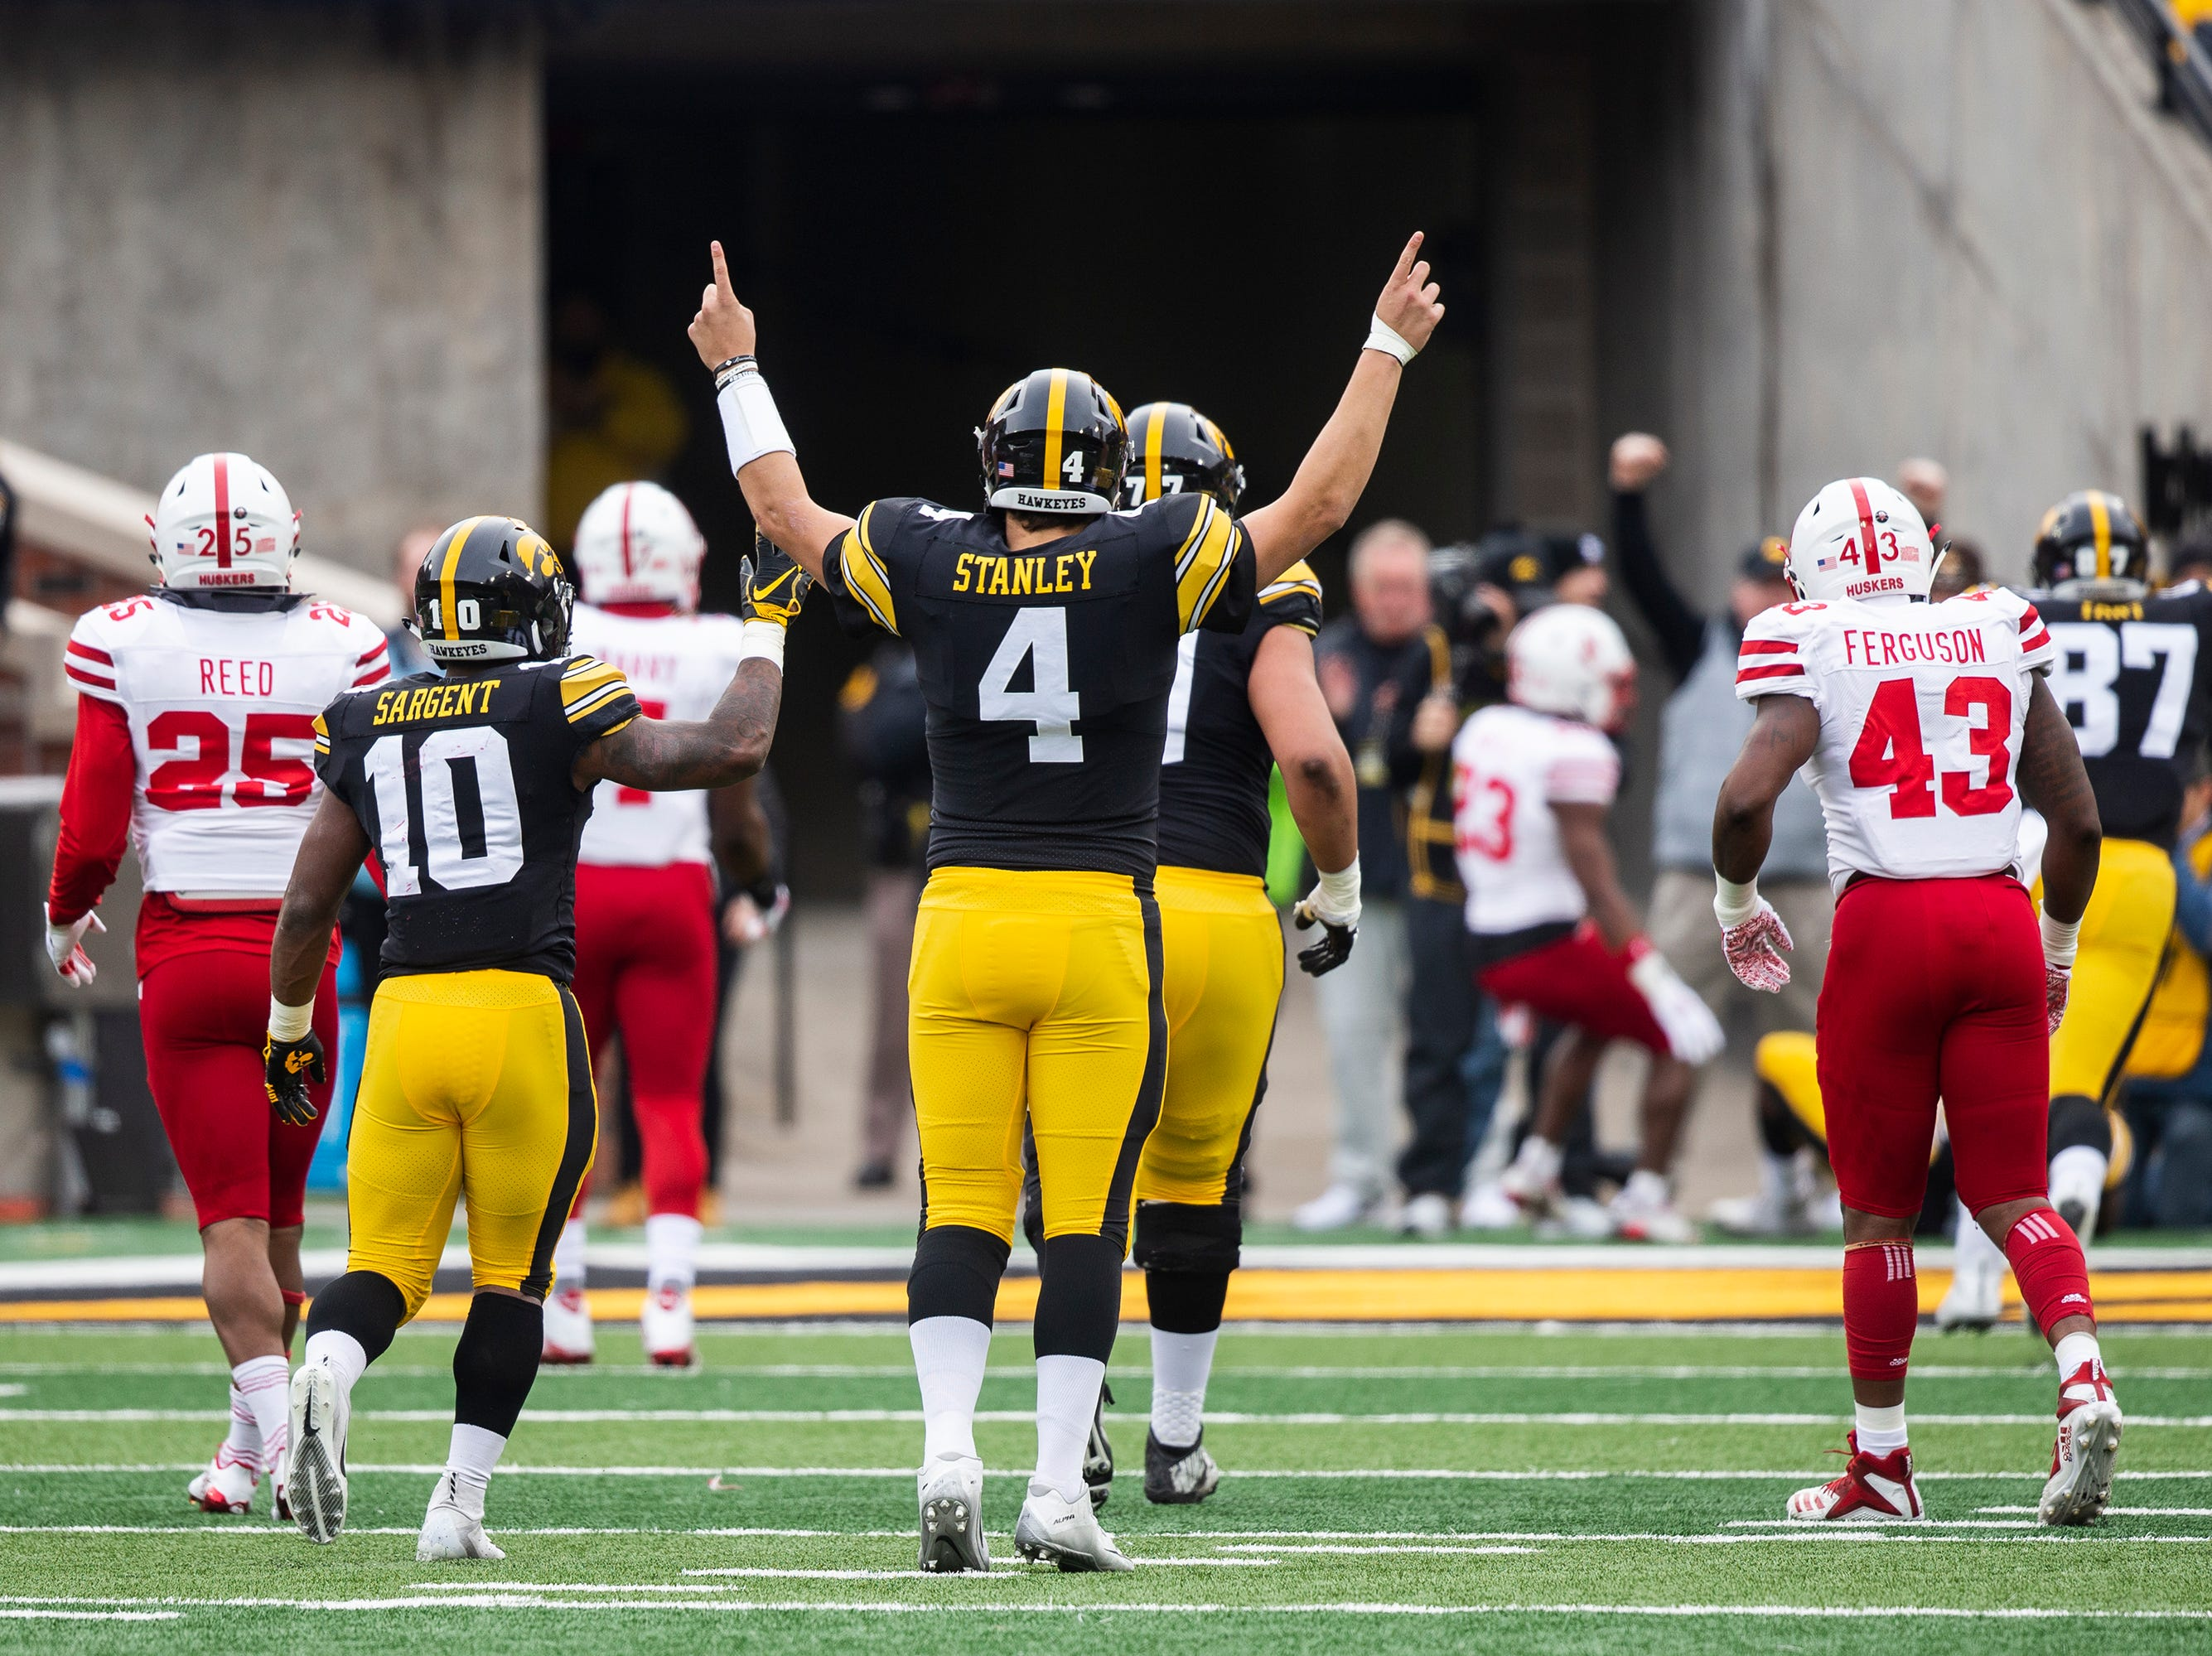 Iowa quarterback Nate Stanley celebrates after making a touchdown scoring pass during the senior day match-up between the Iowa Hawkeyes and the Nebraska Cornhuskers on Friday, Nov. 23, 2018, at Kinnick Stadium, in Iowa City.